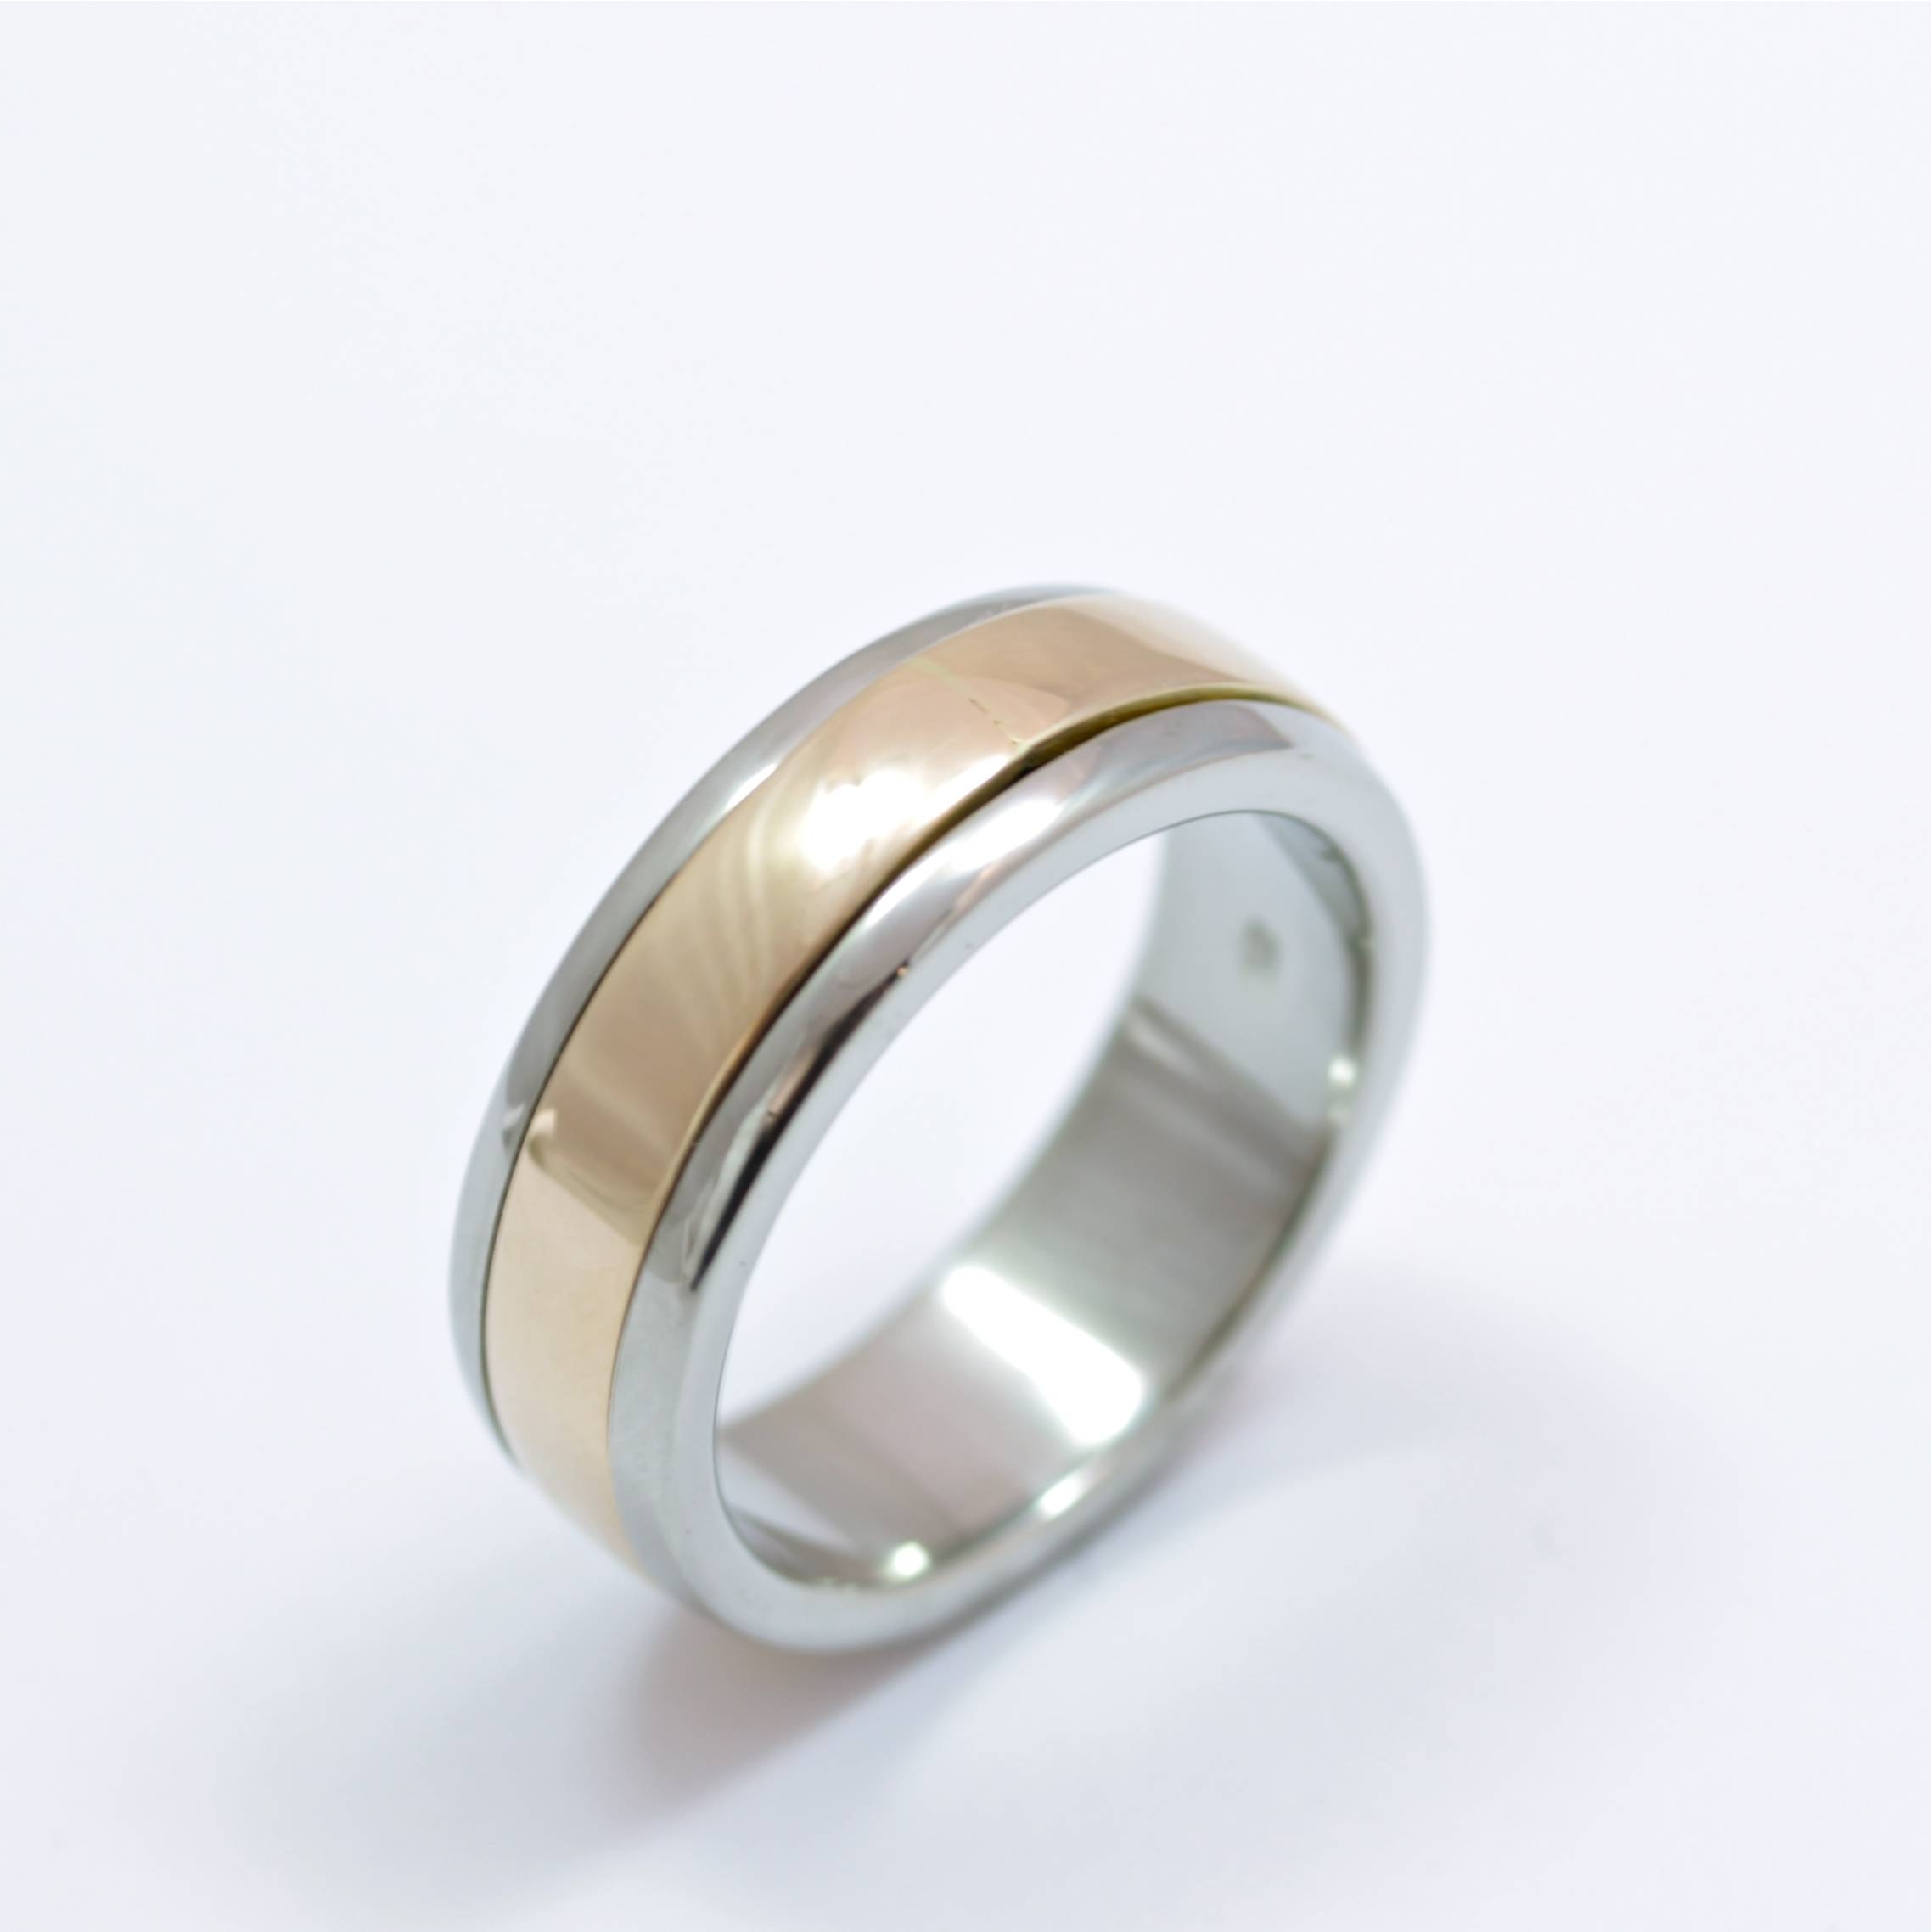 product double rings ring patterned gevery up category line wedding flat mens